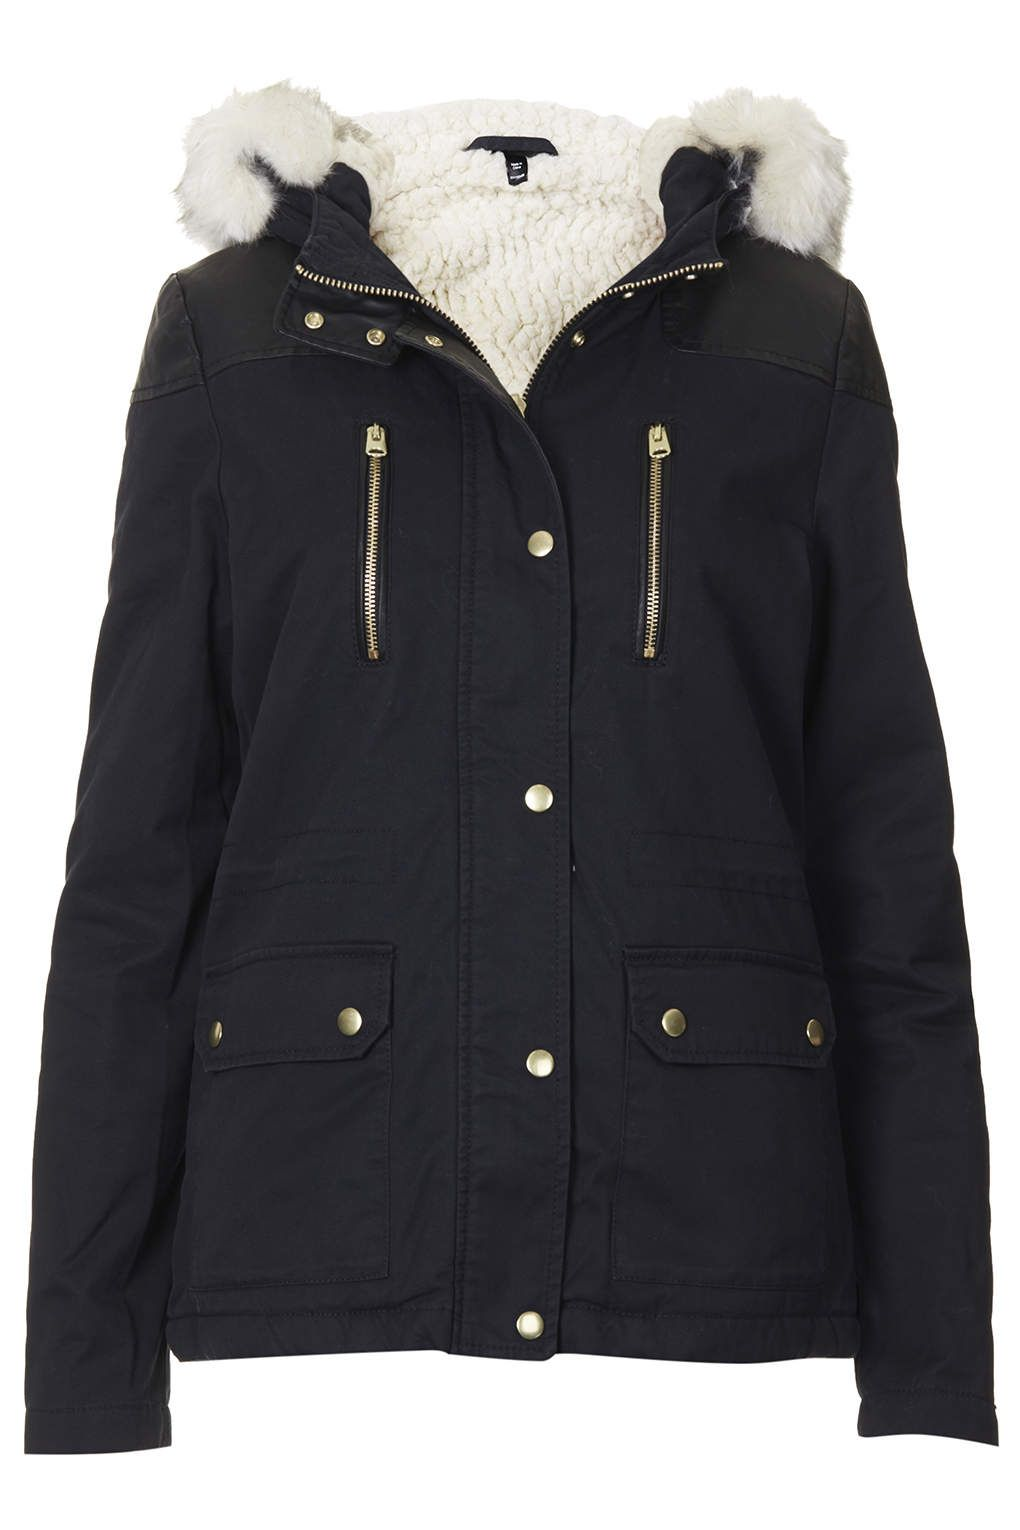 PETITE Faux Fur Trim Borg Lined Short Parka Jacket - Parka Coats ...